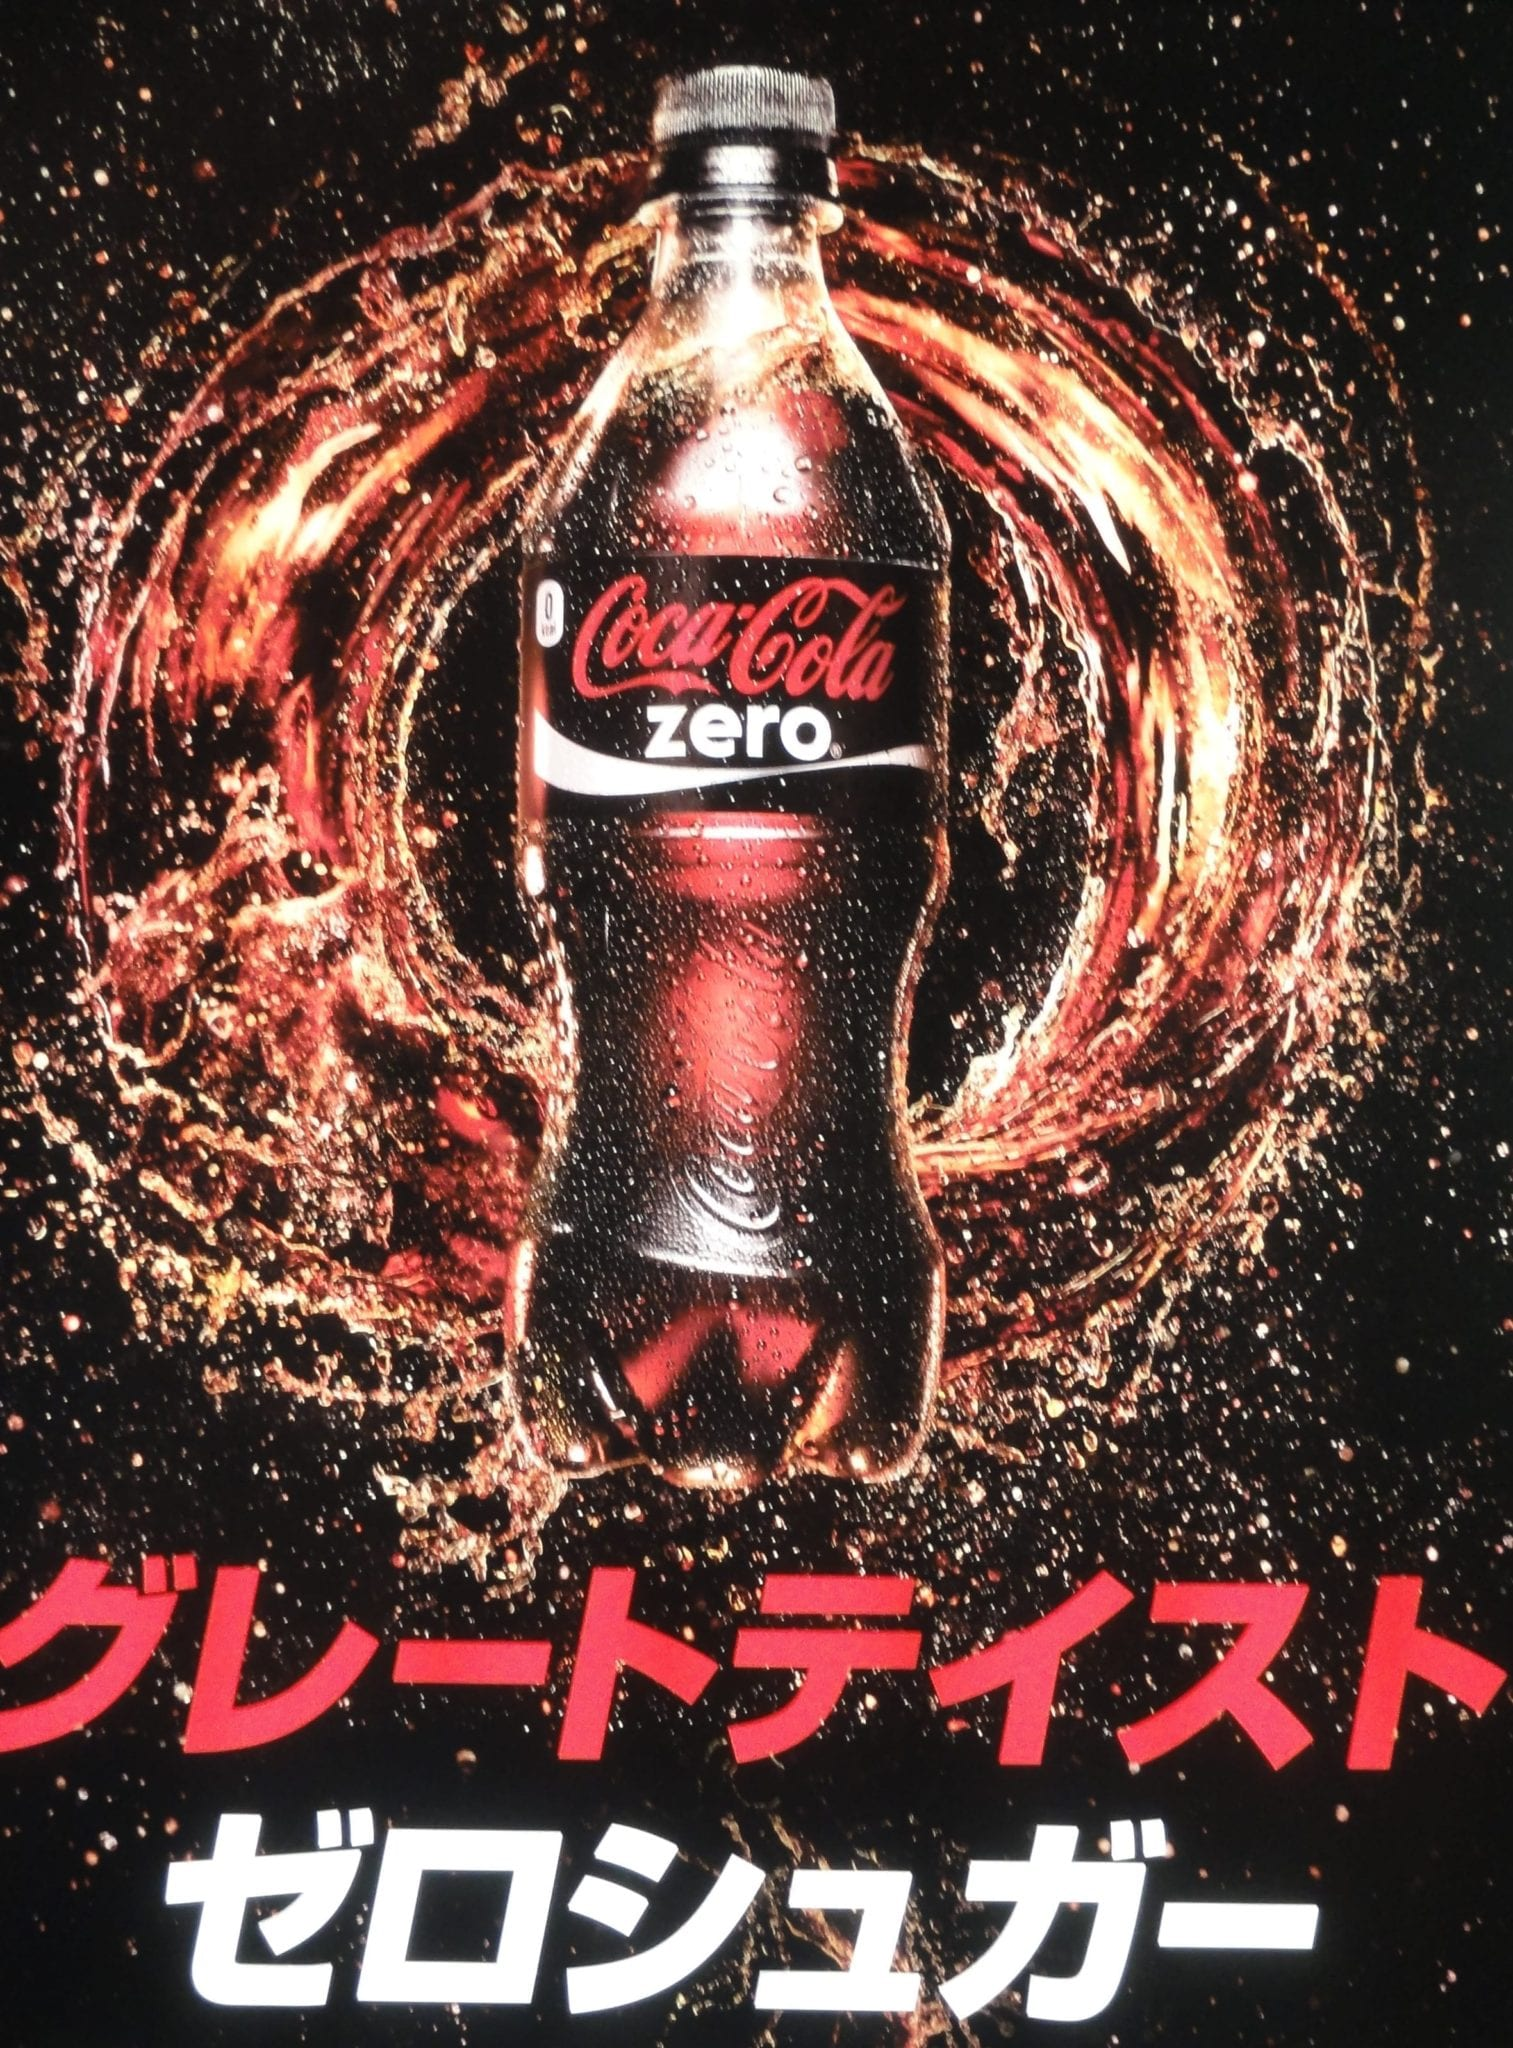 Coca-Cola Japan sign in katakana Japanese alphabet